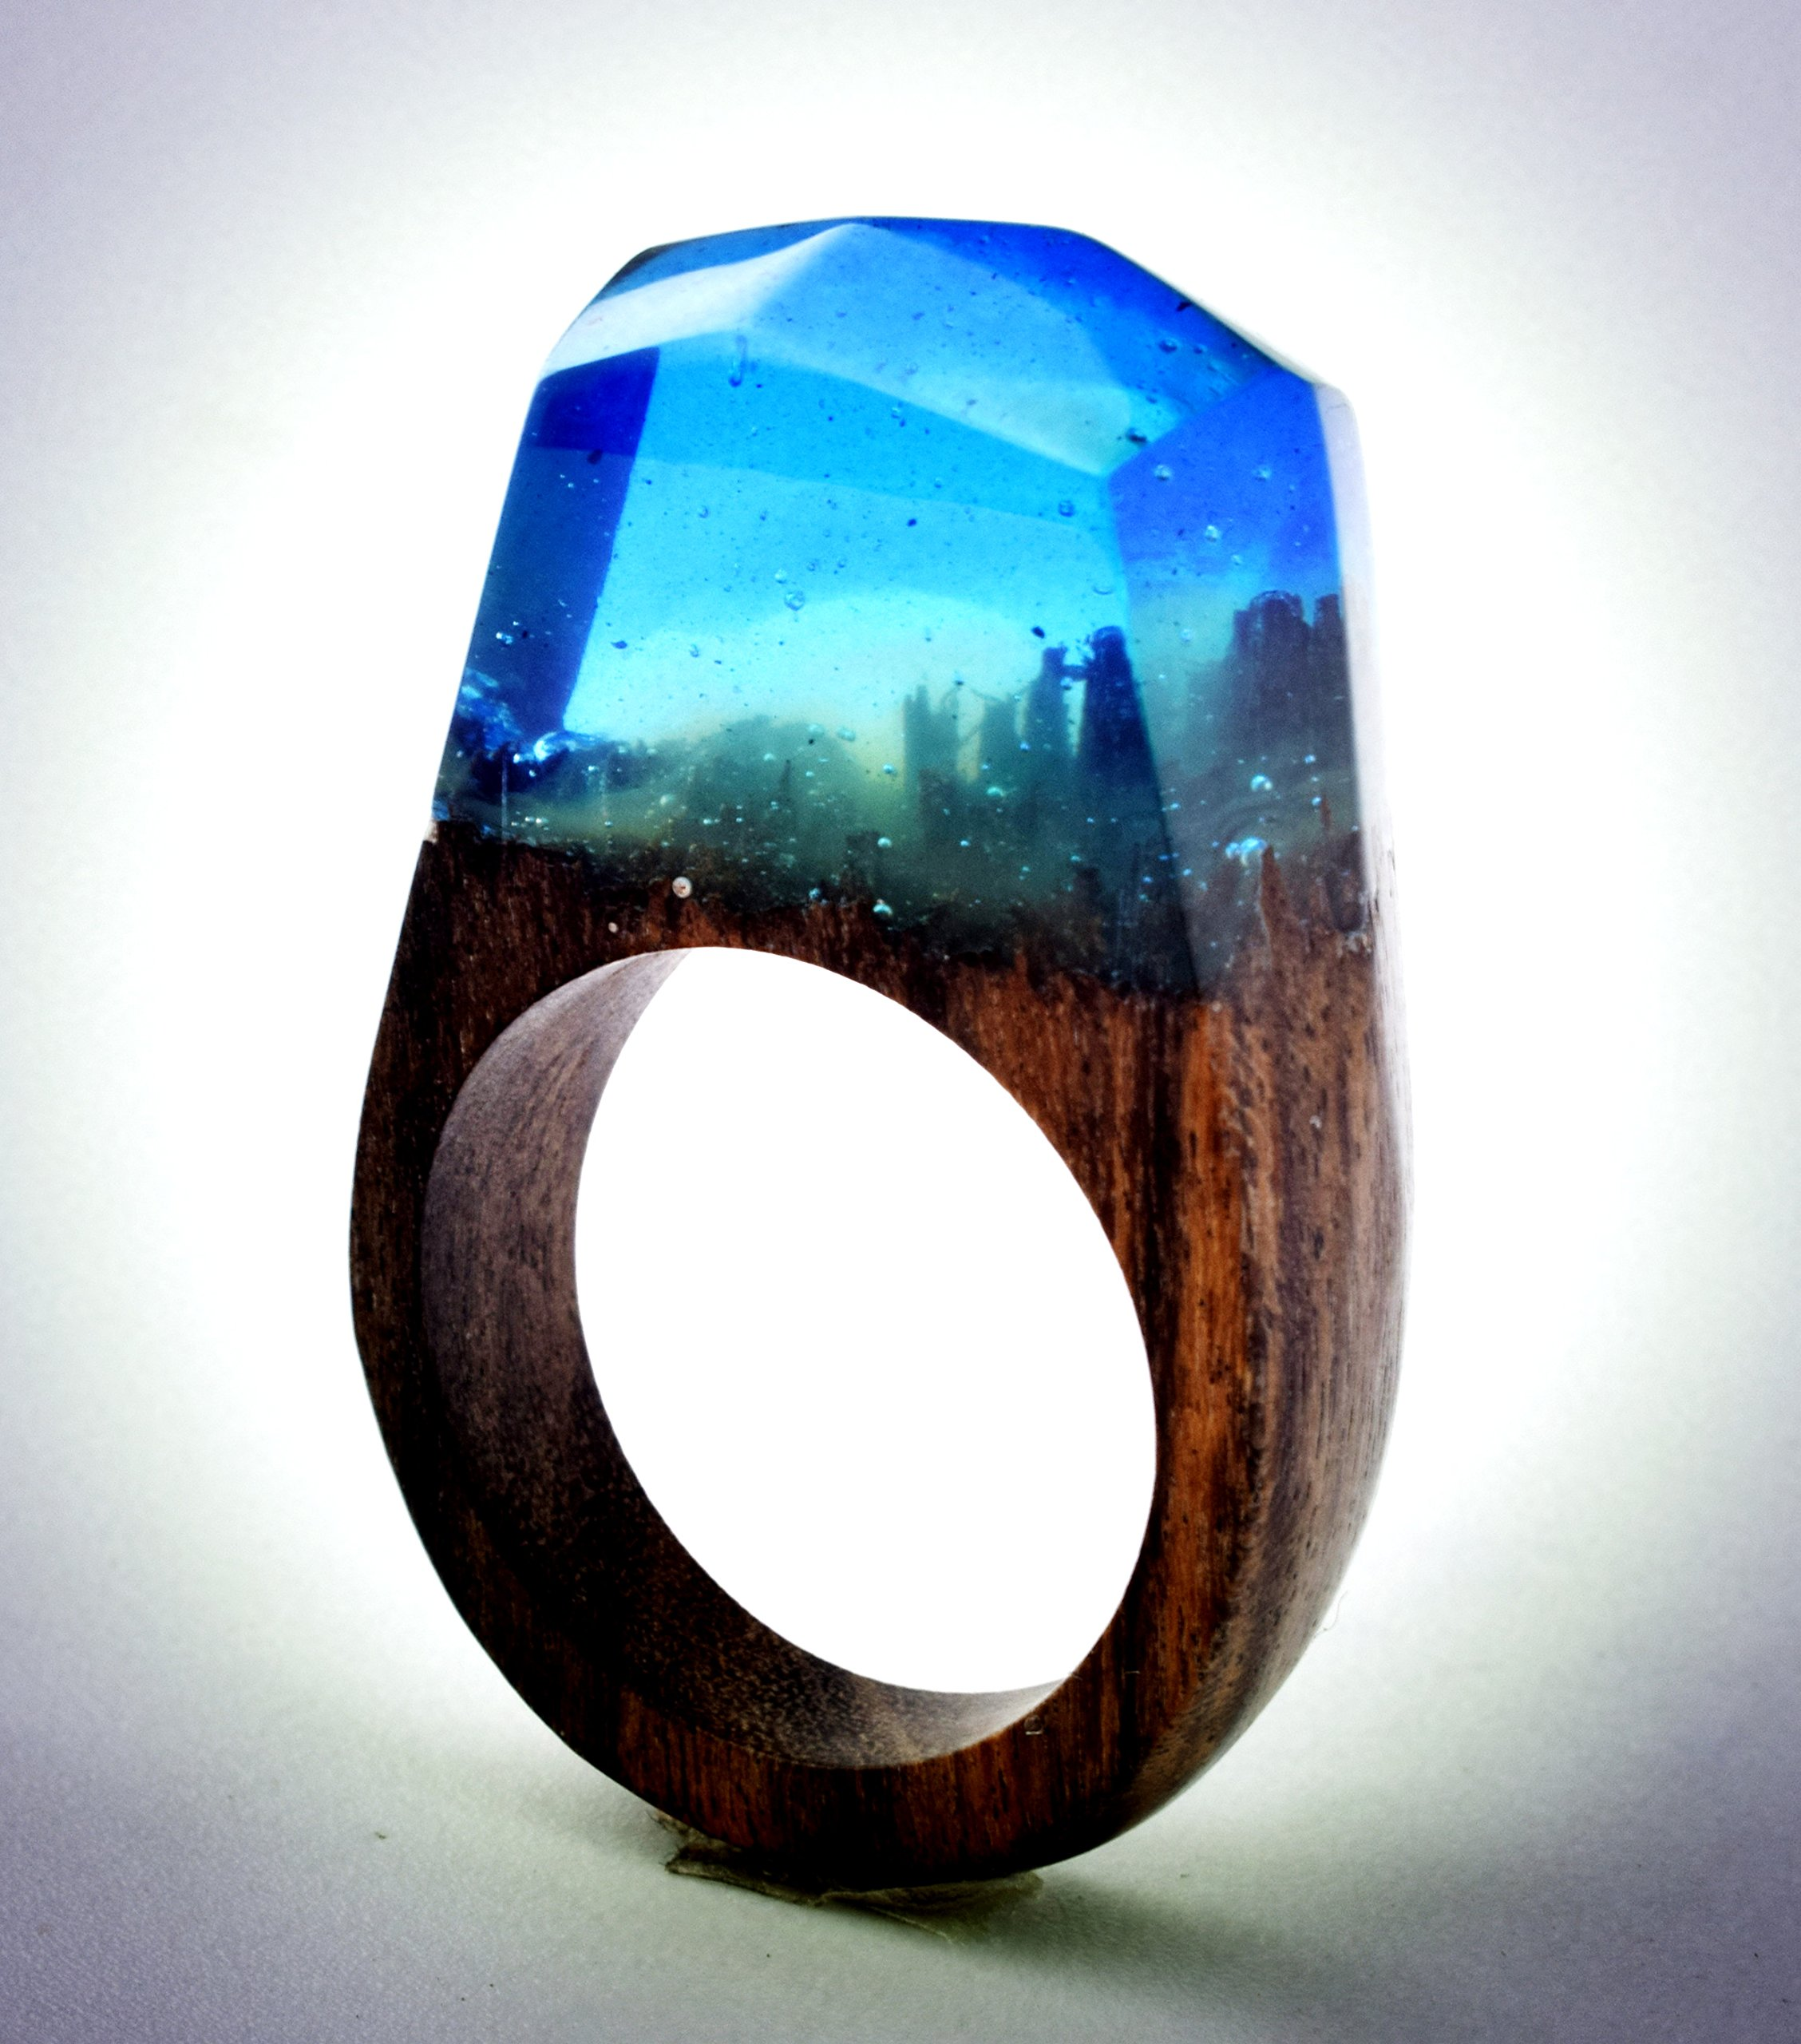 Heyou Love Handmade Wood Resin Ring With Nature Scenery Landscape Inside Jewelry by Heyou Love (Image #2)